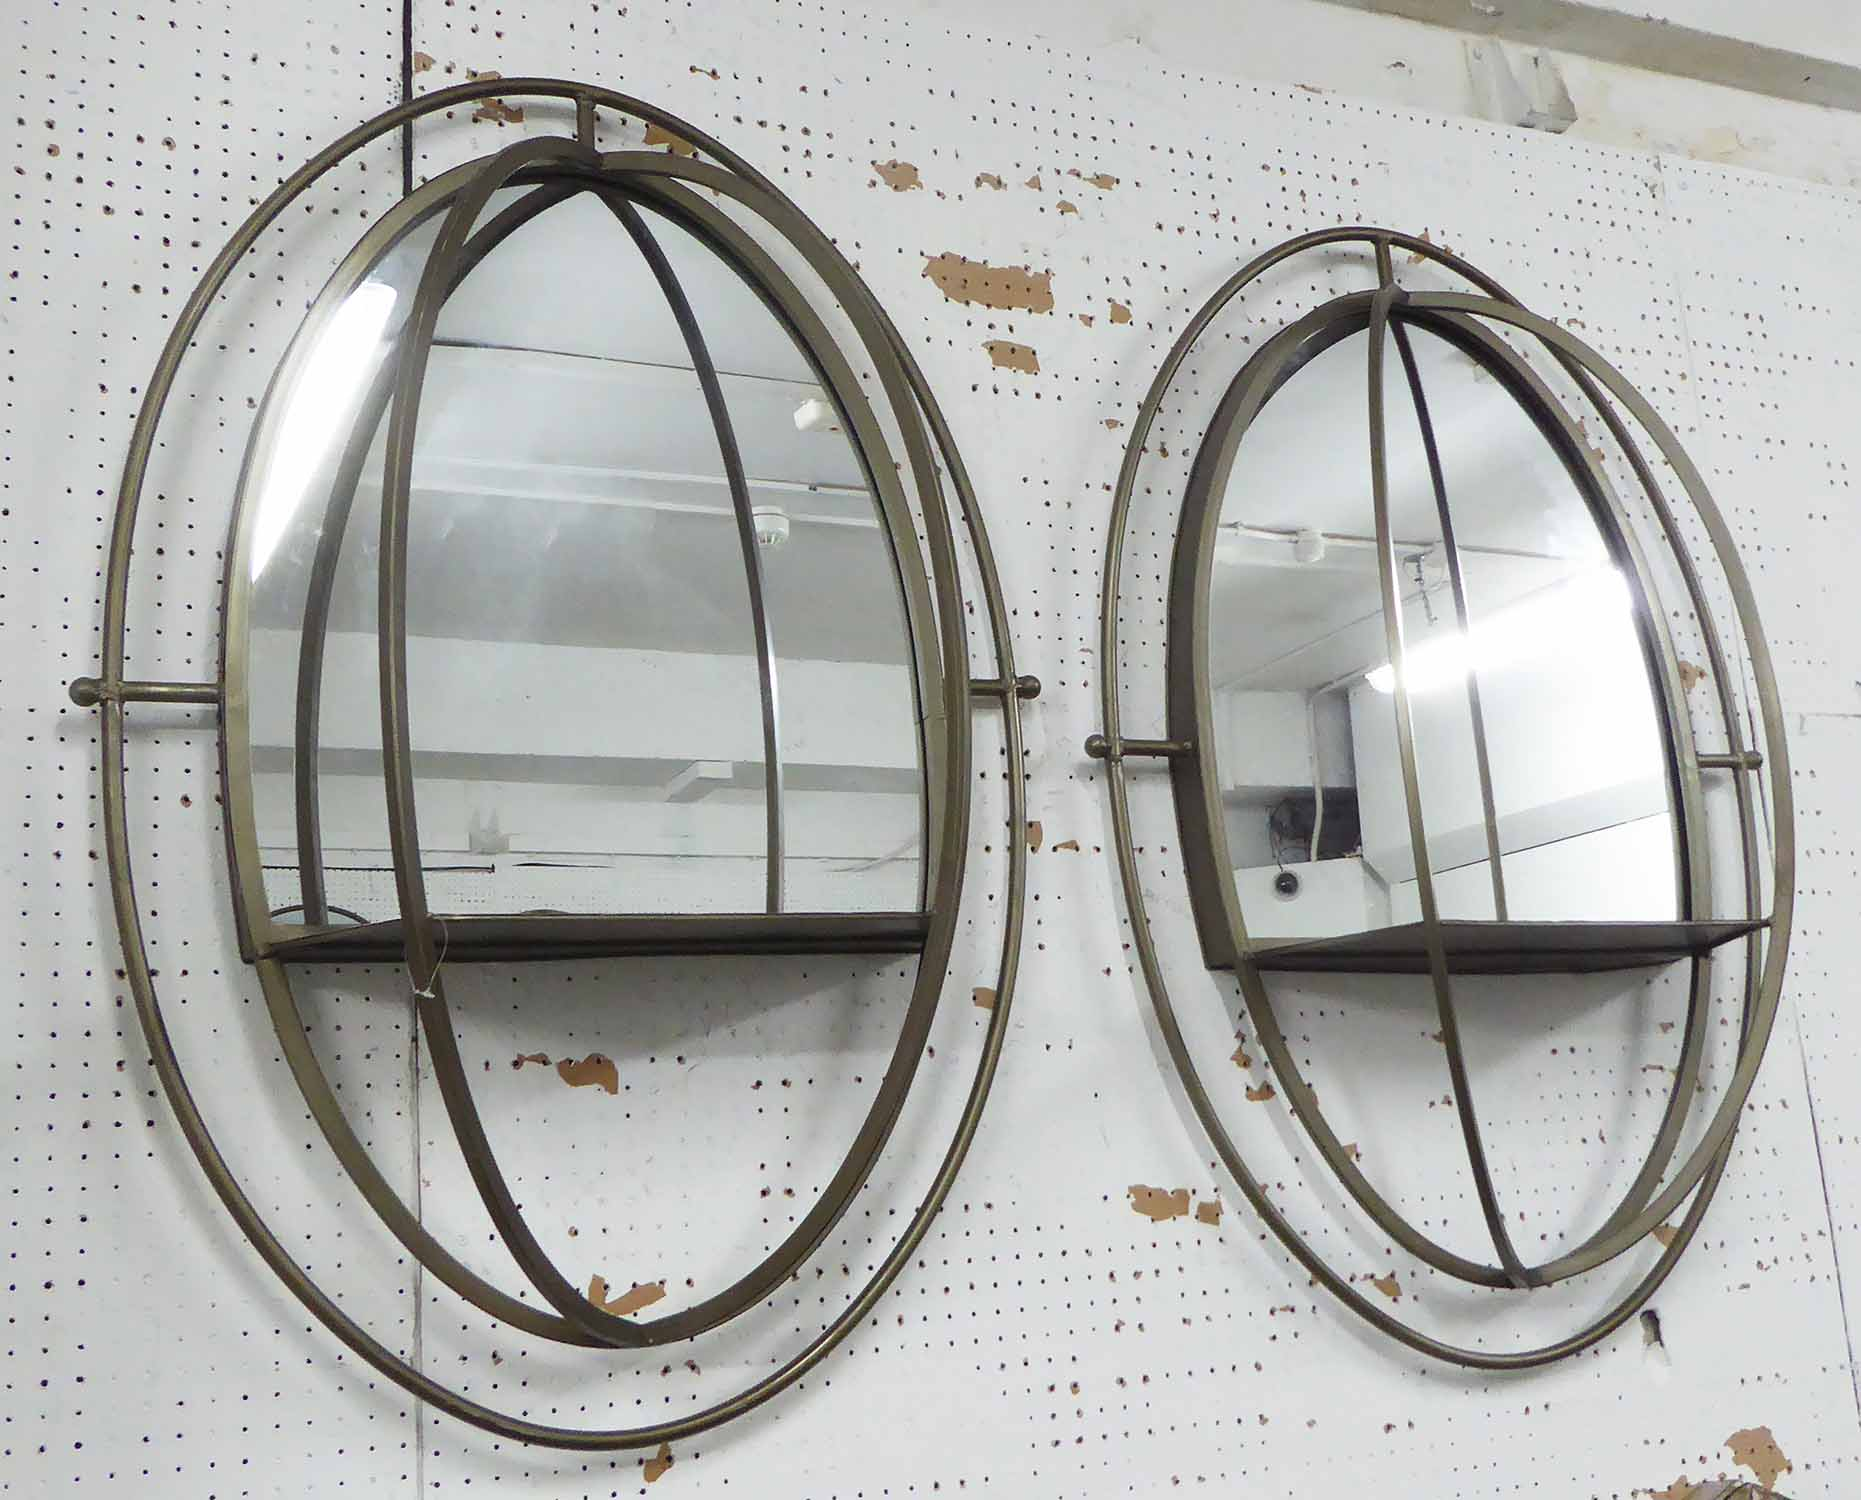 Lot 85 - MIRRORED WALL NICHES, a pair, 1950s English inspired design, 110cm x 70cm.